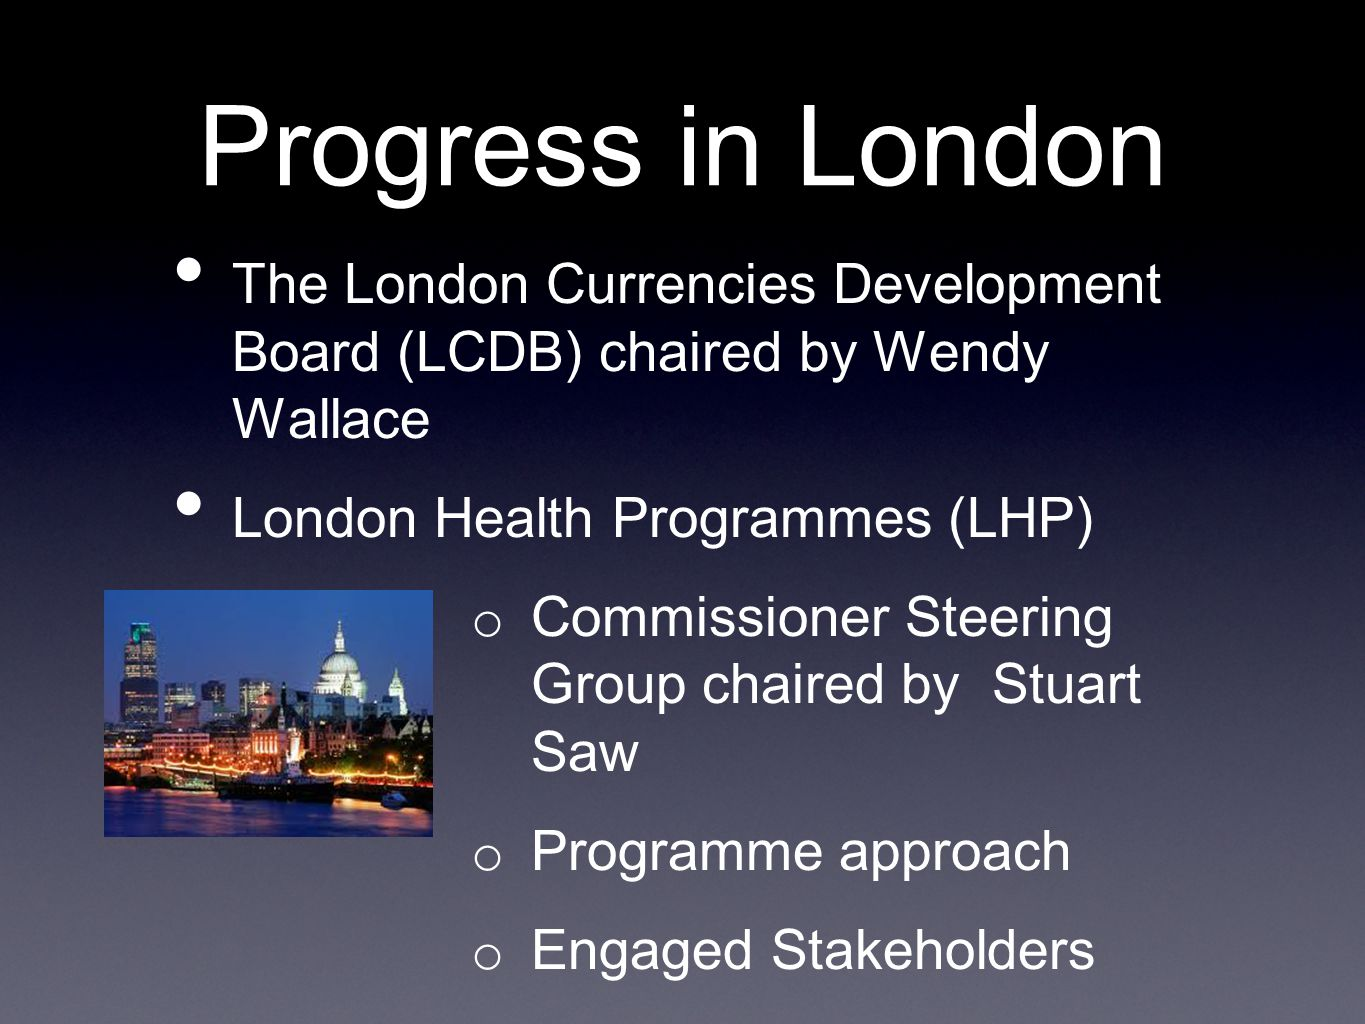 Progress in London The London Currencies Development Board (LCDB) chaired by Wendy Wallace London Health Programmes (LHP) o Commissioner Steering Group chaired by Stuart Saw o Programme approach o Engaged Stakeholders